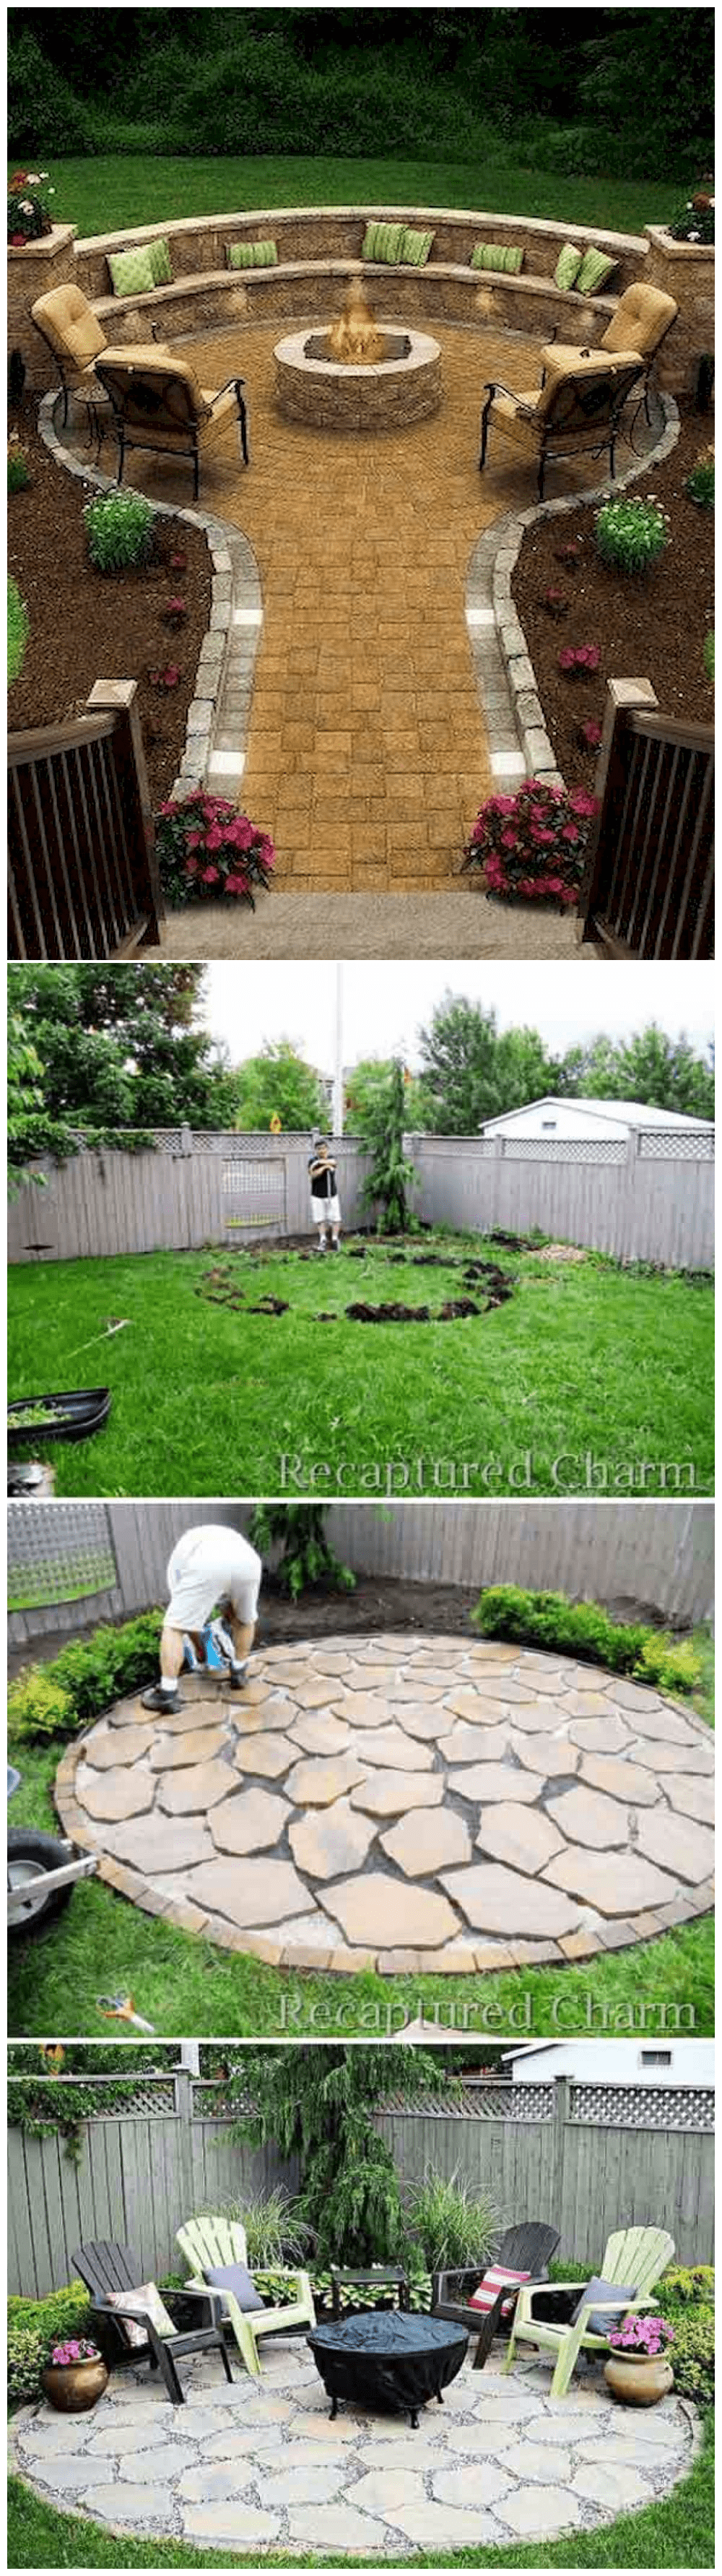 Simphome.com A diy patio ideas on a budget diy patio patios and garden